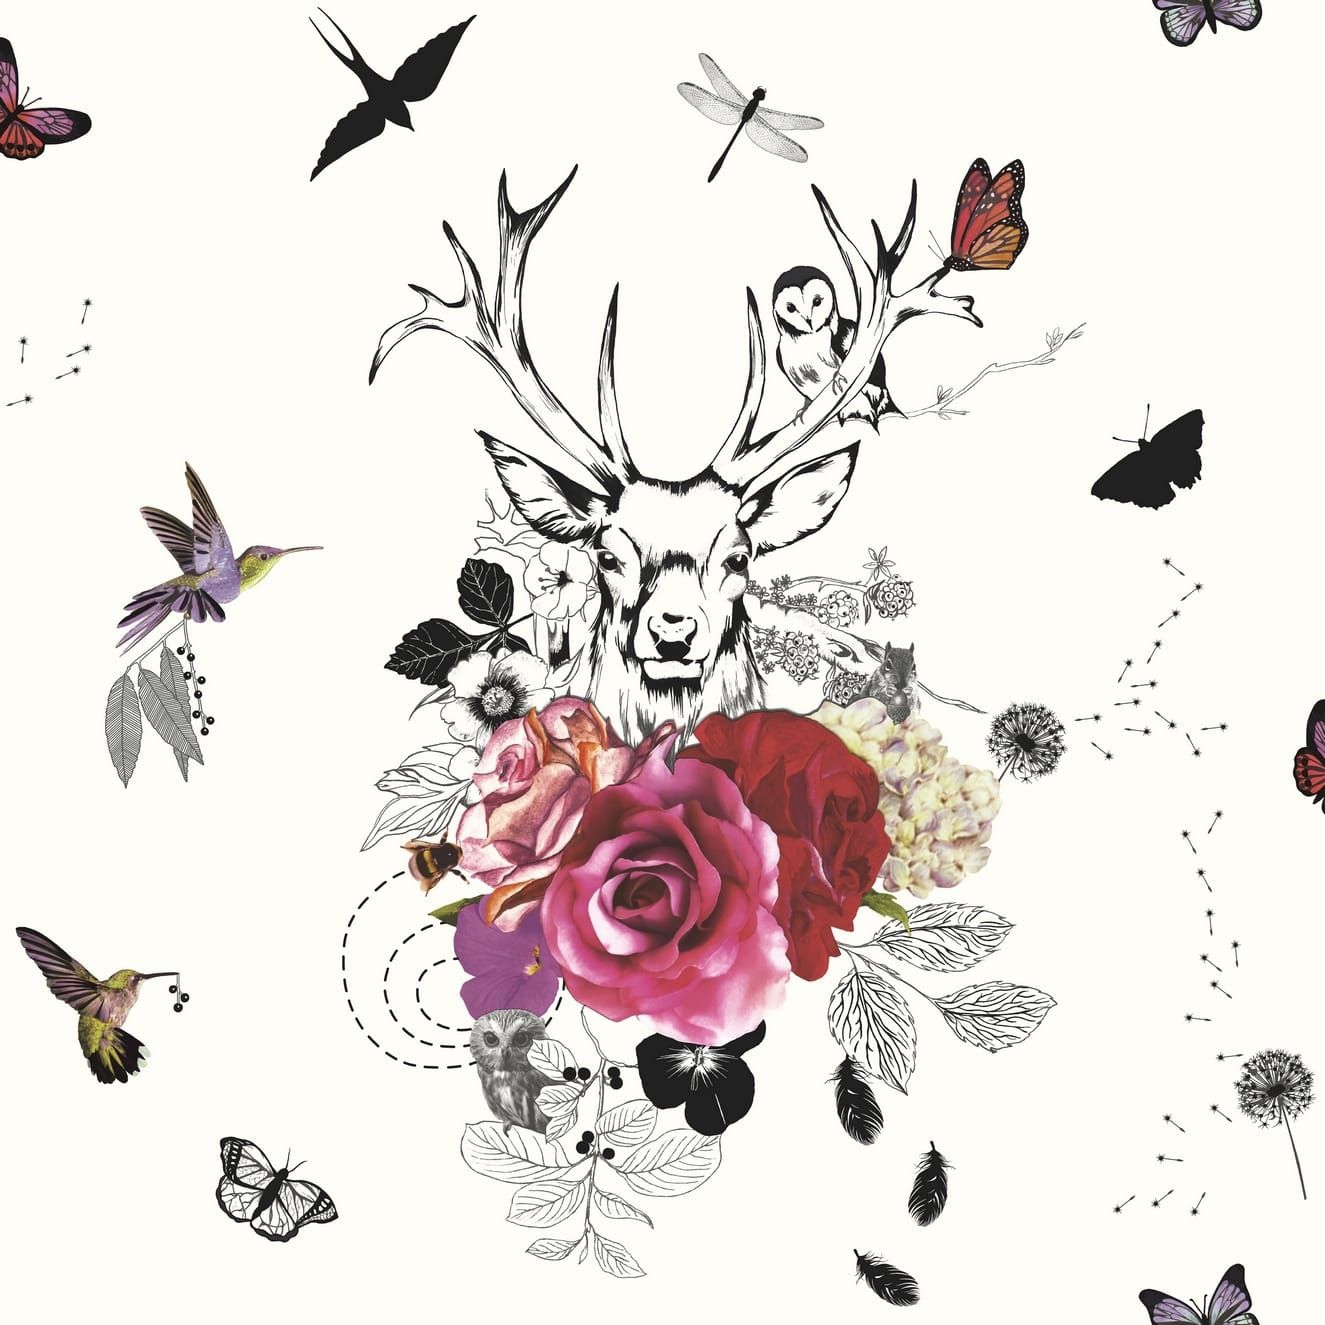 A fantasy woodland theme featuring a majestic stag accompanied by